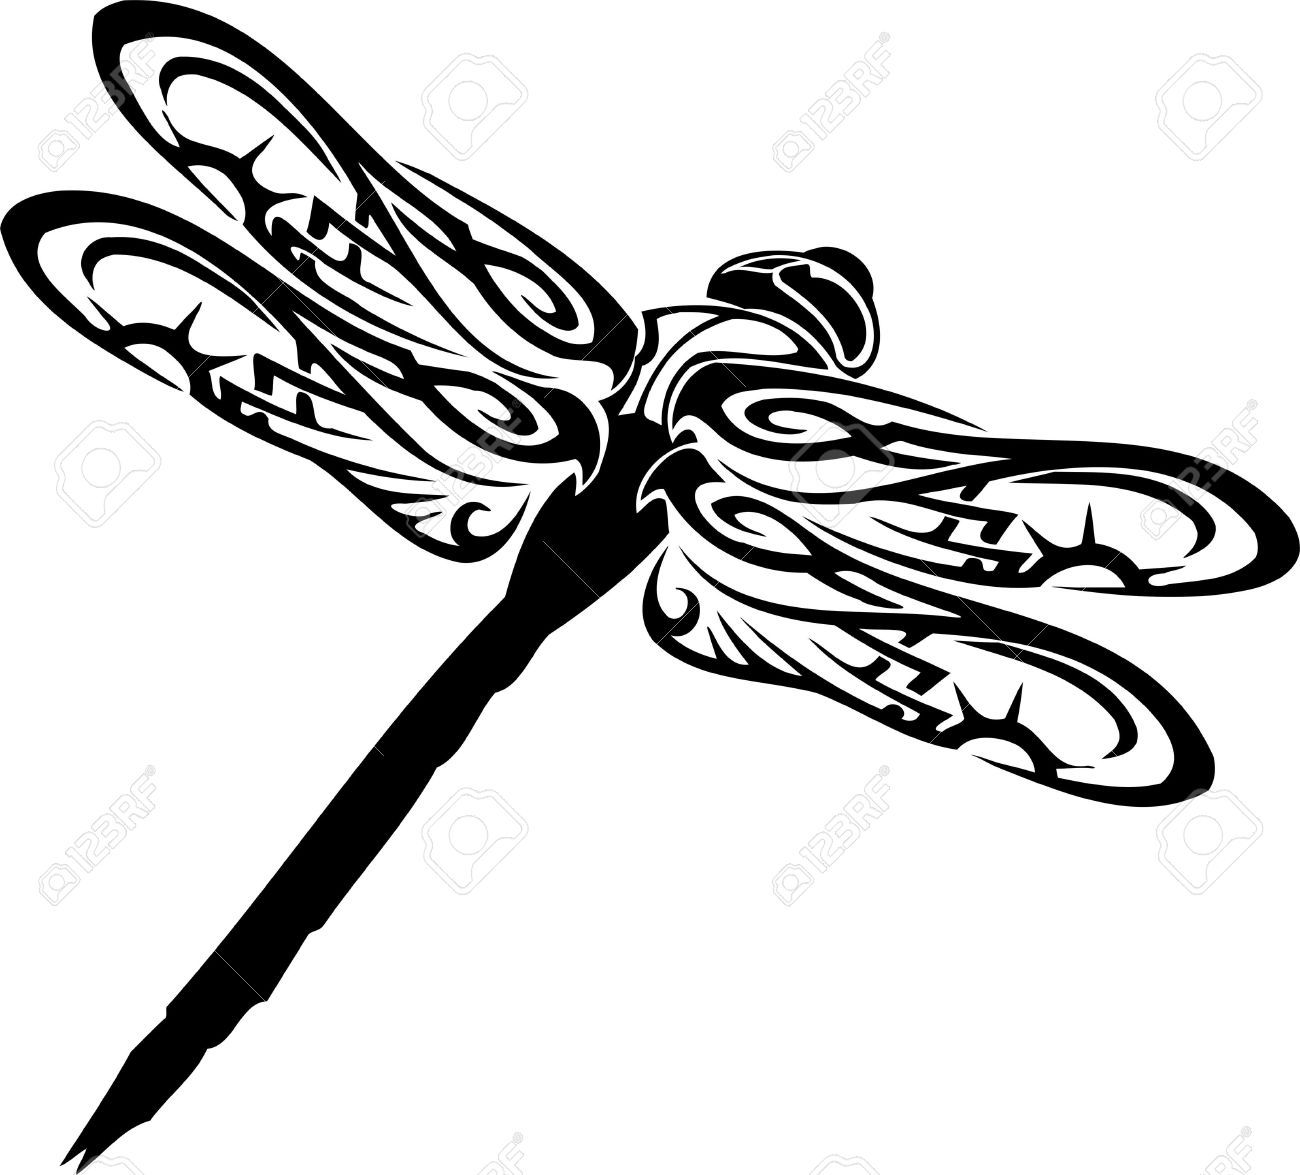 1300x1175 Dragonfly Cliparts, Stock Vector And Royalty Free Dragonfly